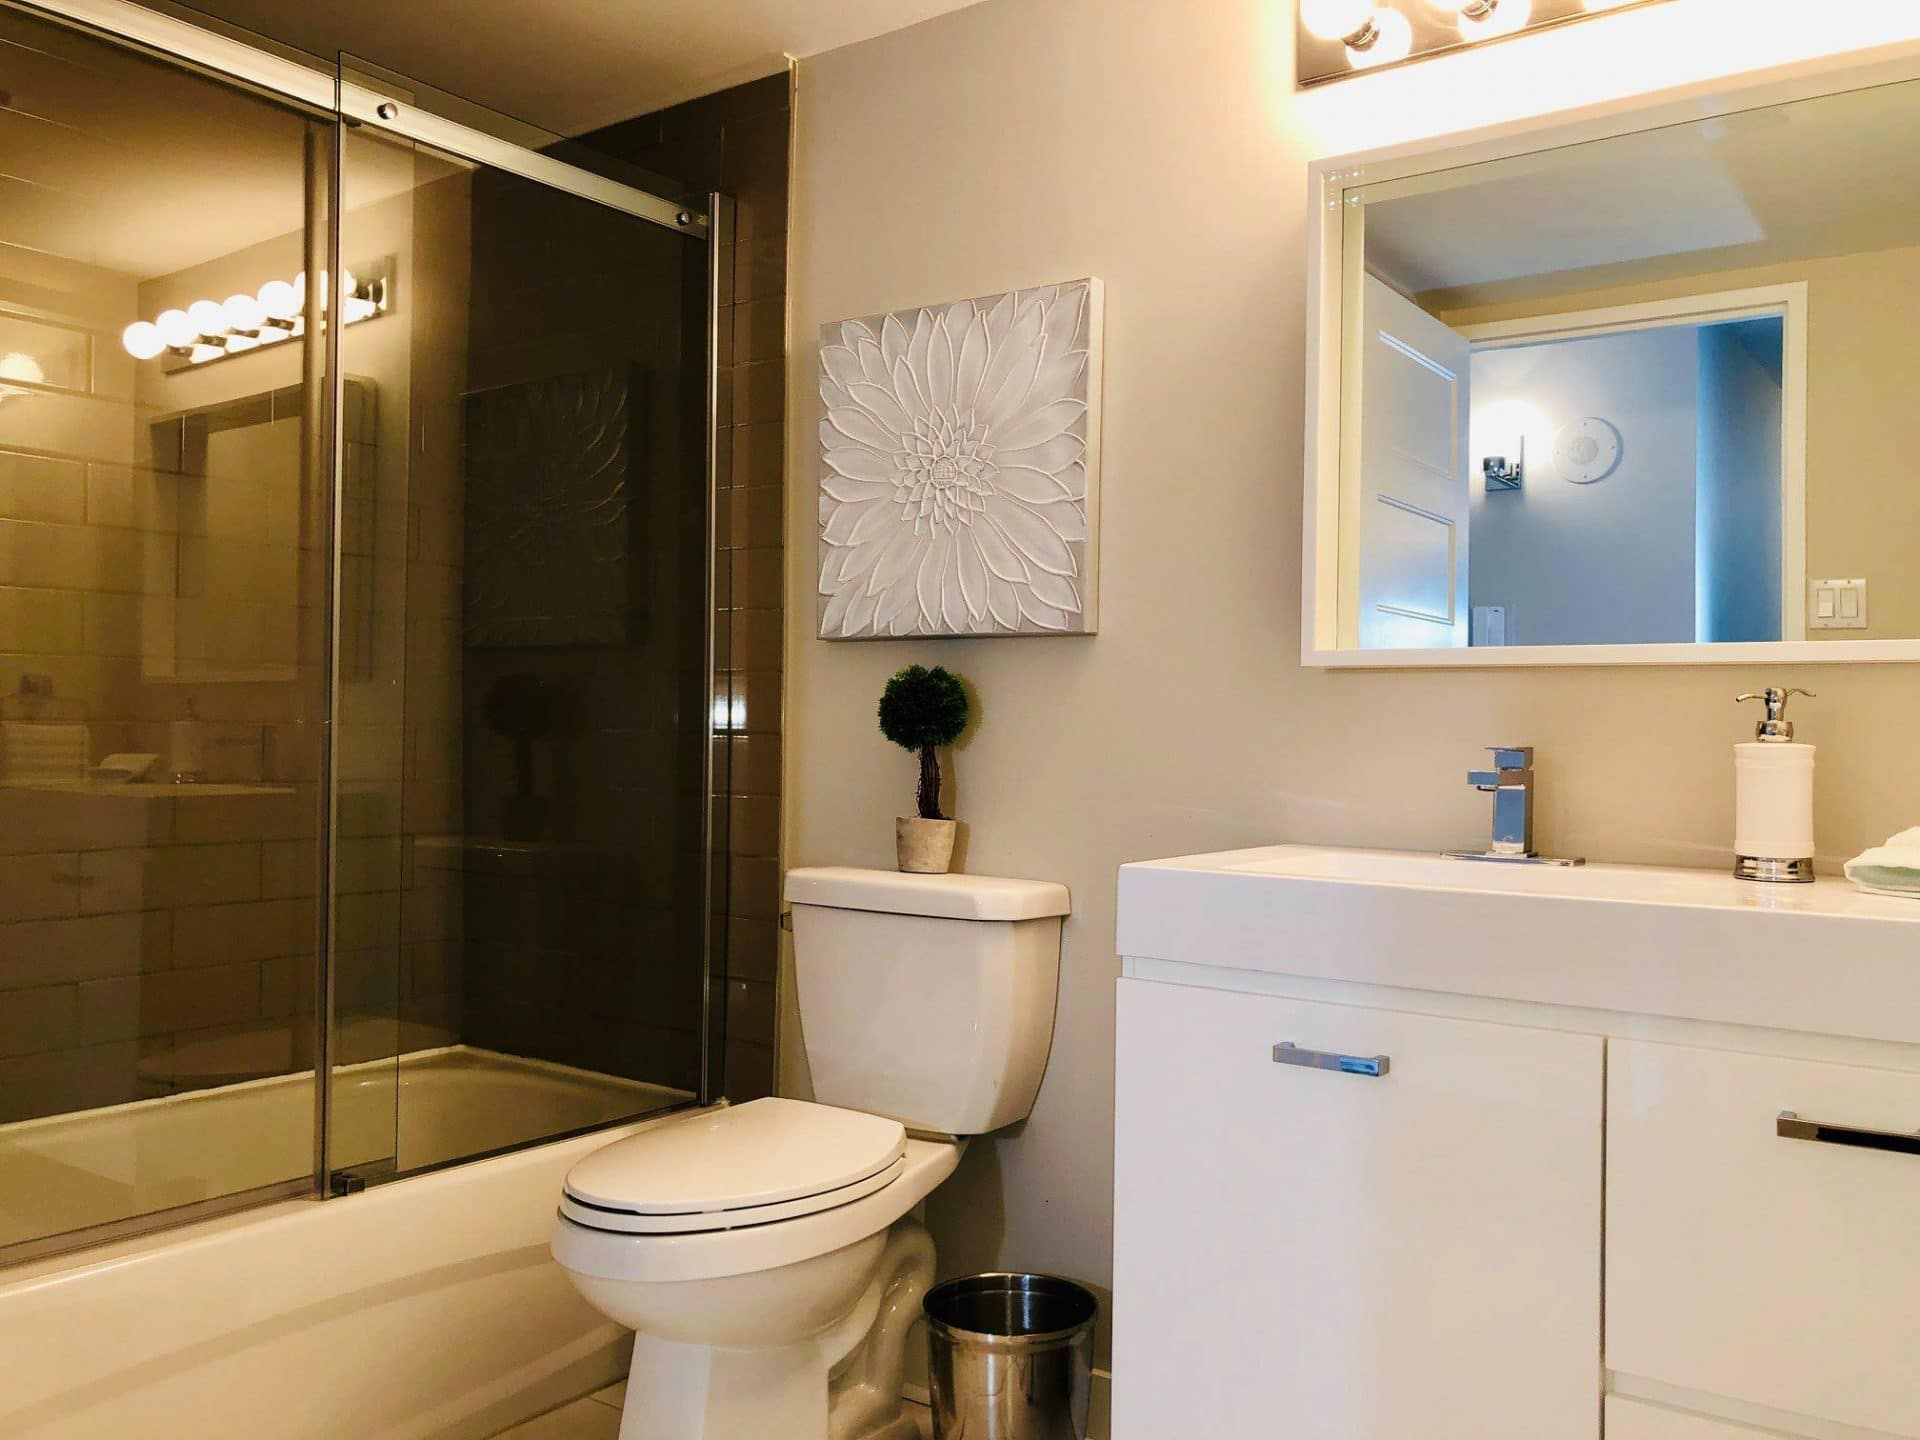 Residence Vanier - Appartement pour personnes agees - 001